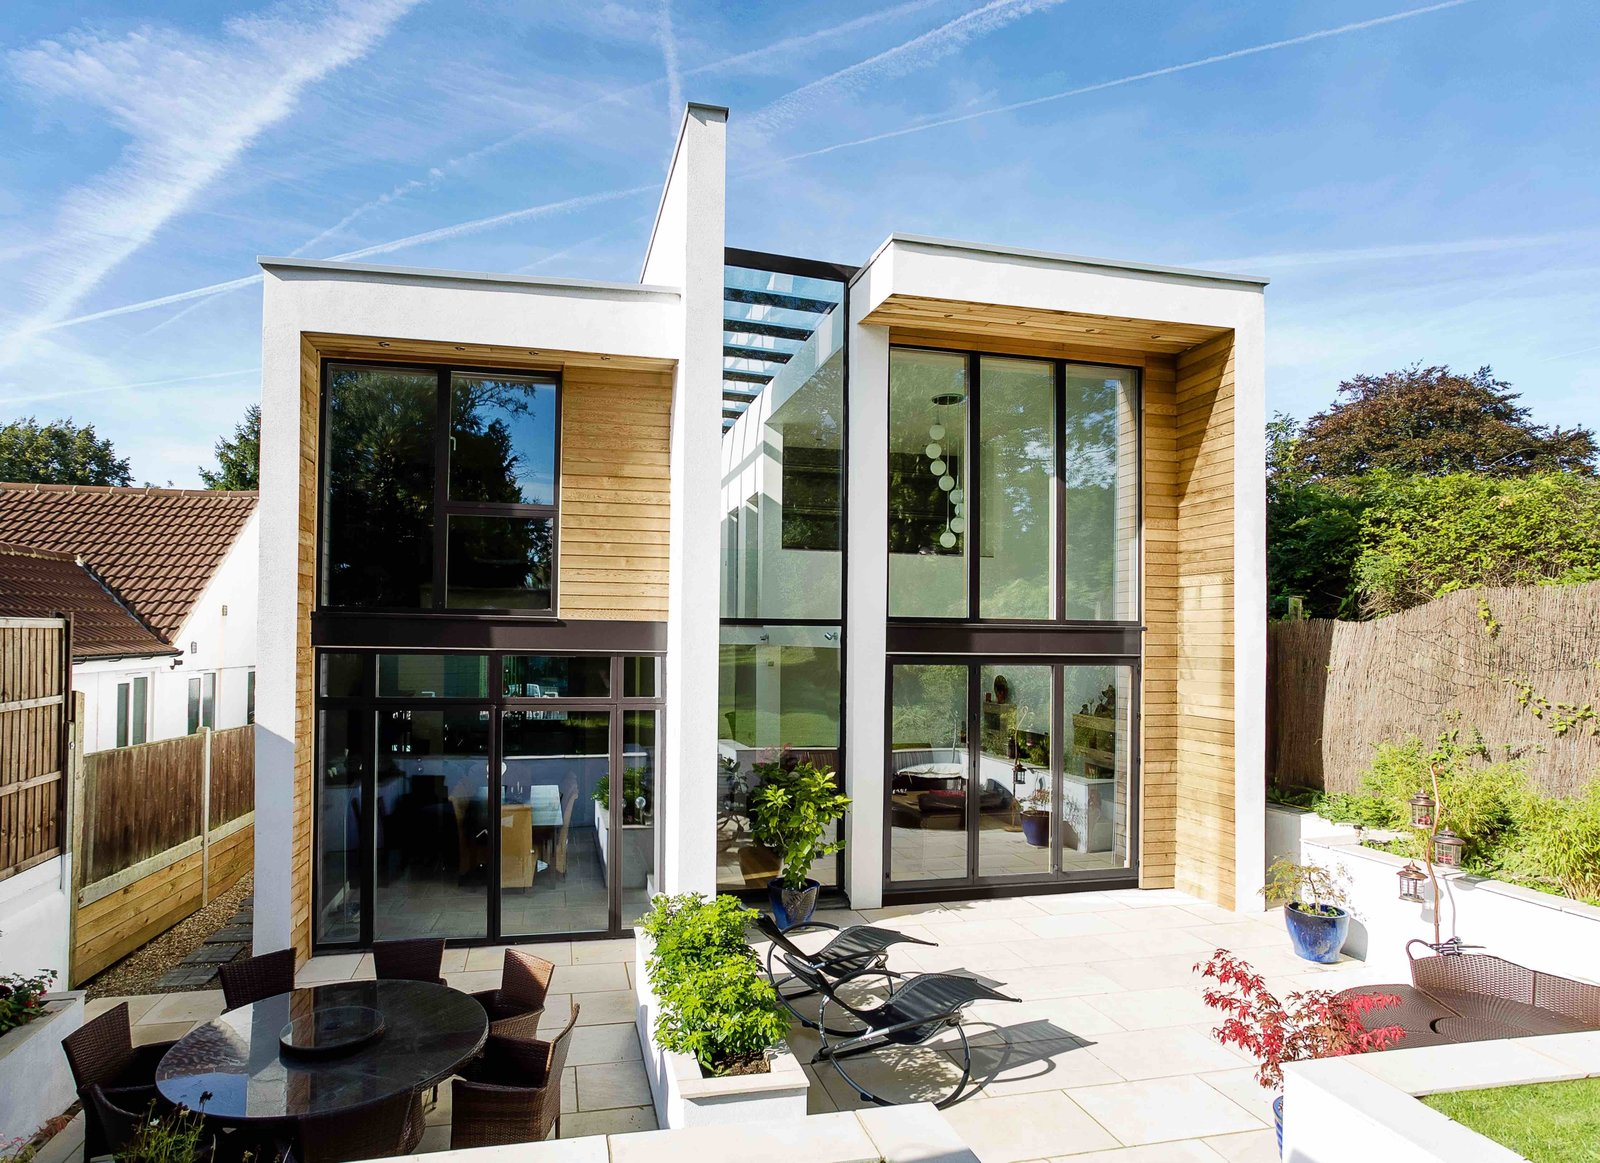 Exterior The cedar-and-glass structure rises over an expansive rear patio. Although it is larger than some of its neighbors, the home nearly matches the height line of the surrounding houses due to its flat, modern roof.  Wrap House by Luke Hopping